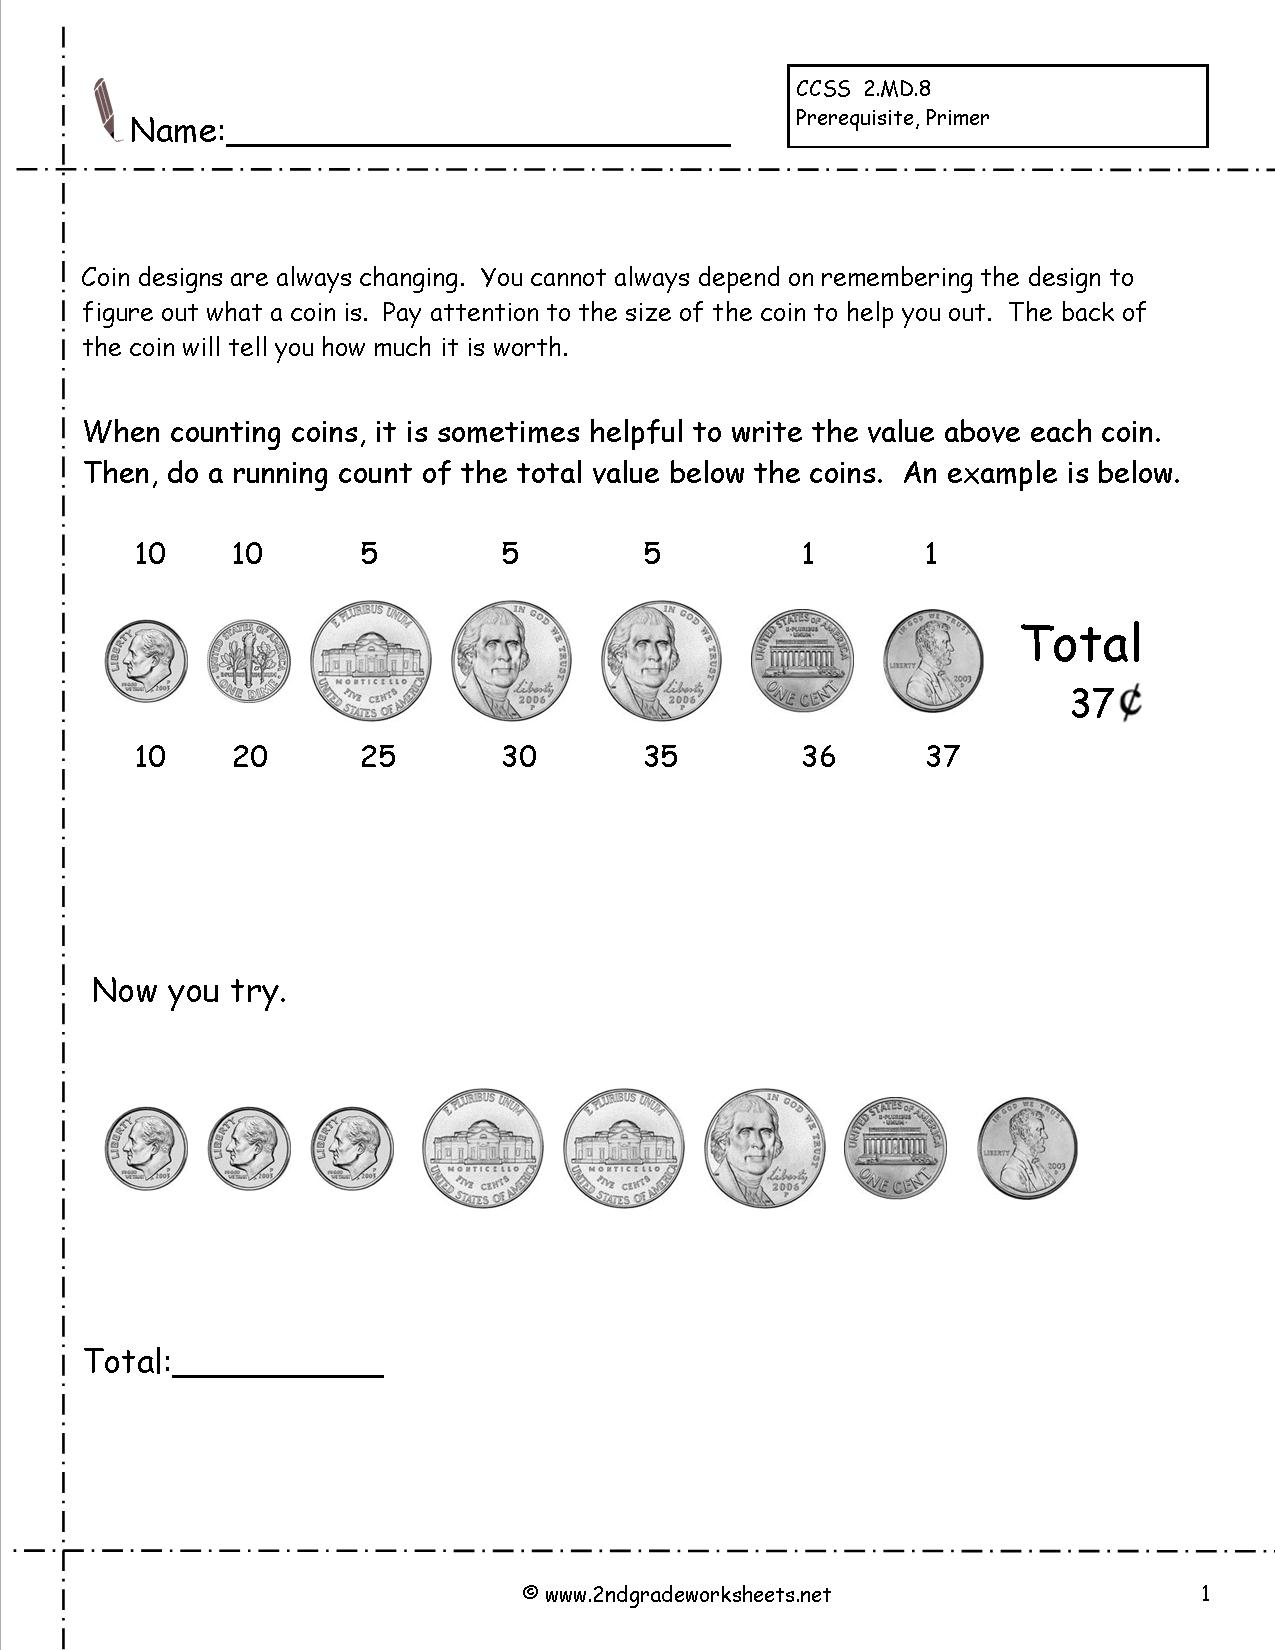 14 Best Images Of Coin Identification Worksheets Printable